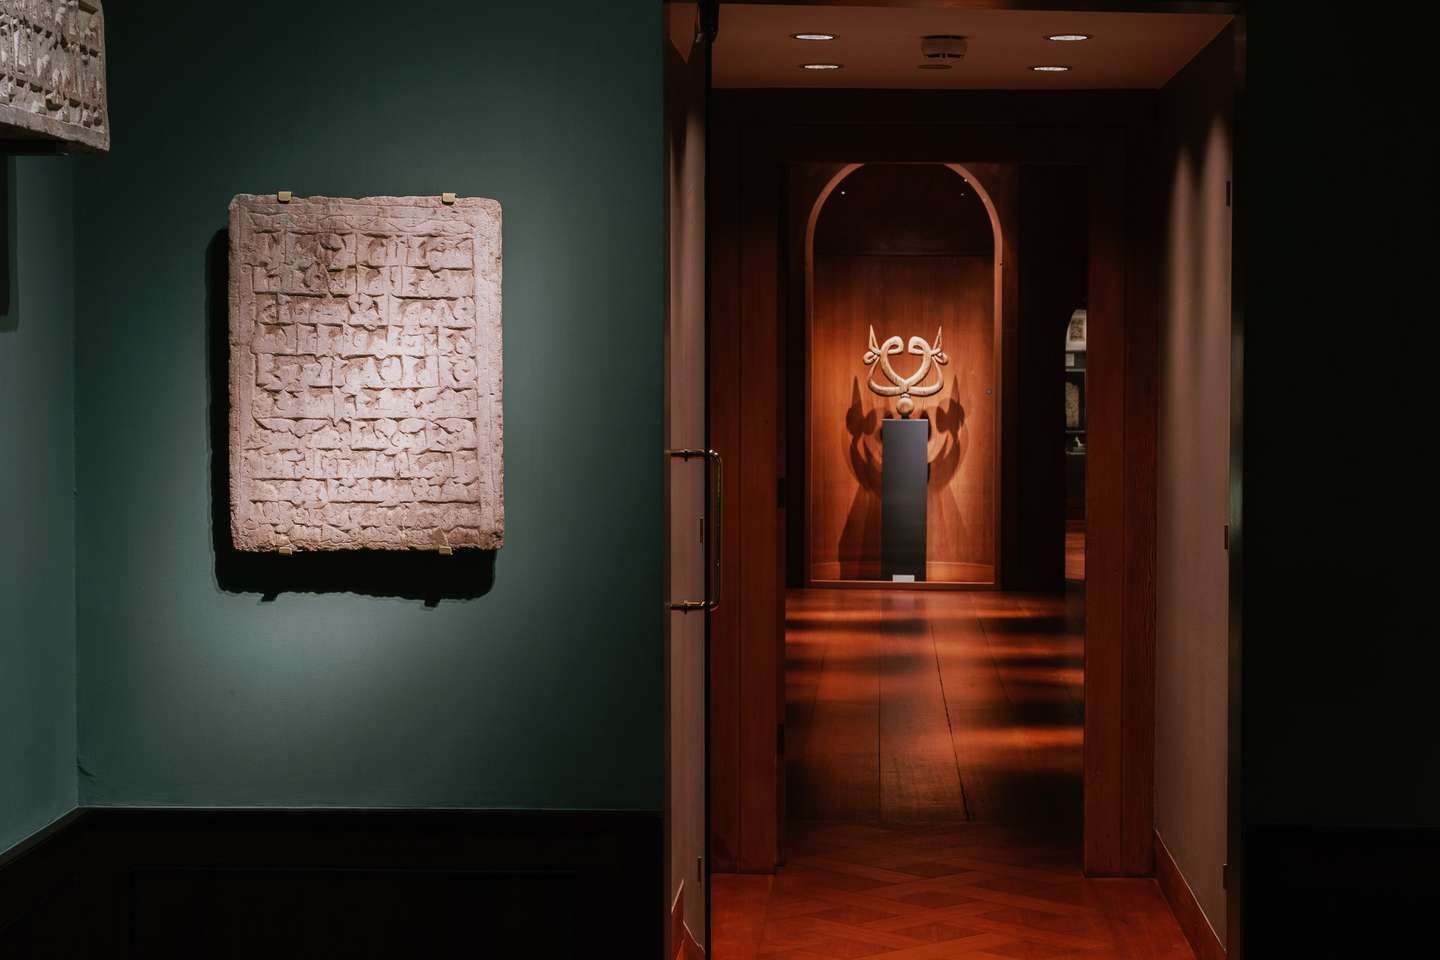 The entrance of the dissemination department, in which there is exhibited a Tyrkish sufi-emblem of wood from the 18-19th century, in the niche in farthest place of the room.